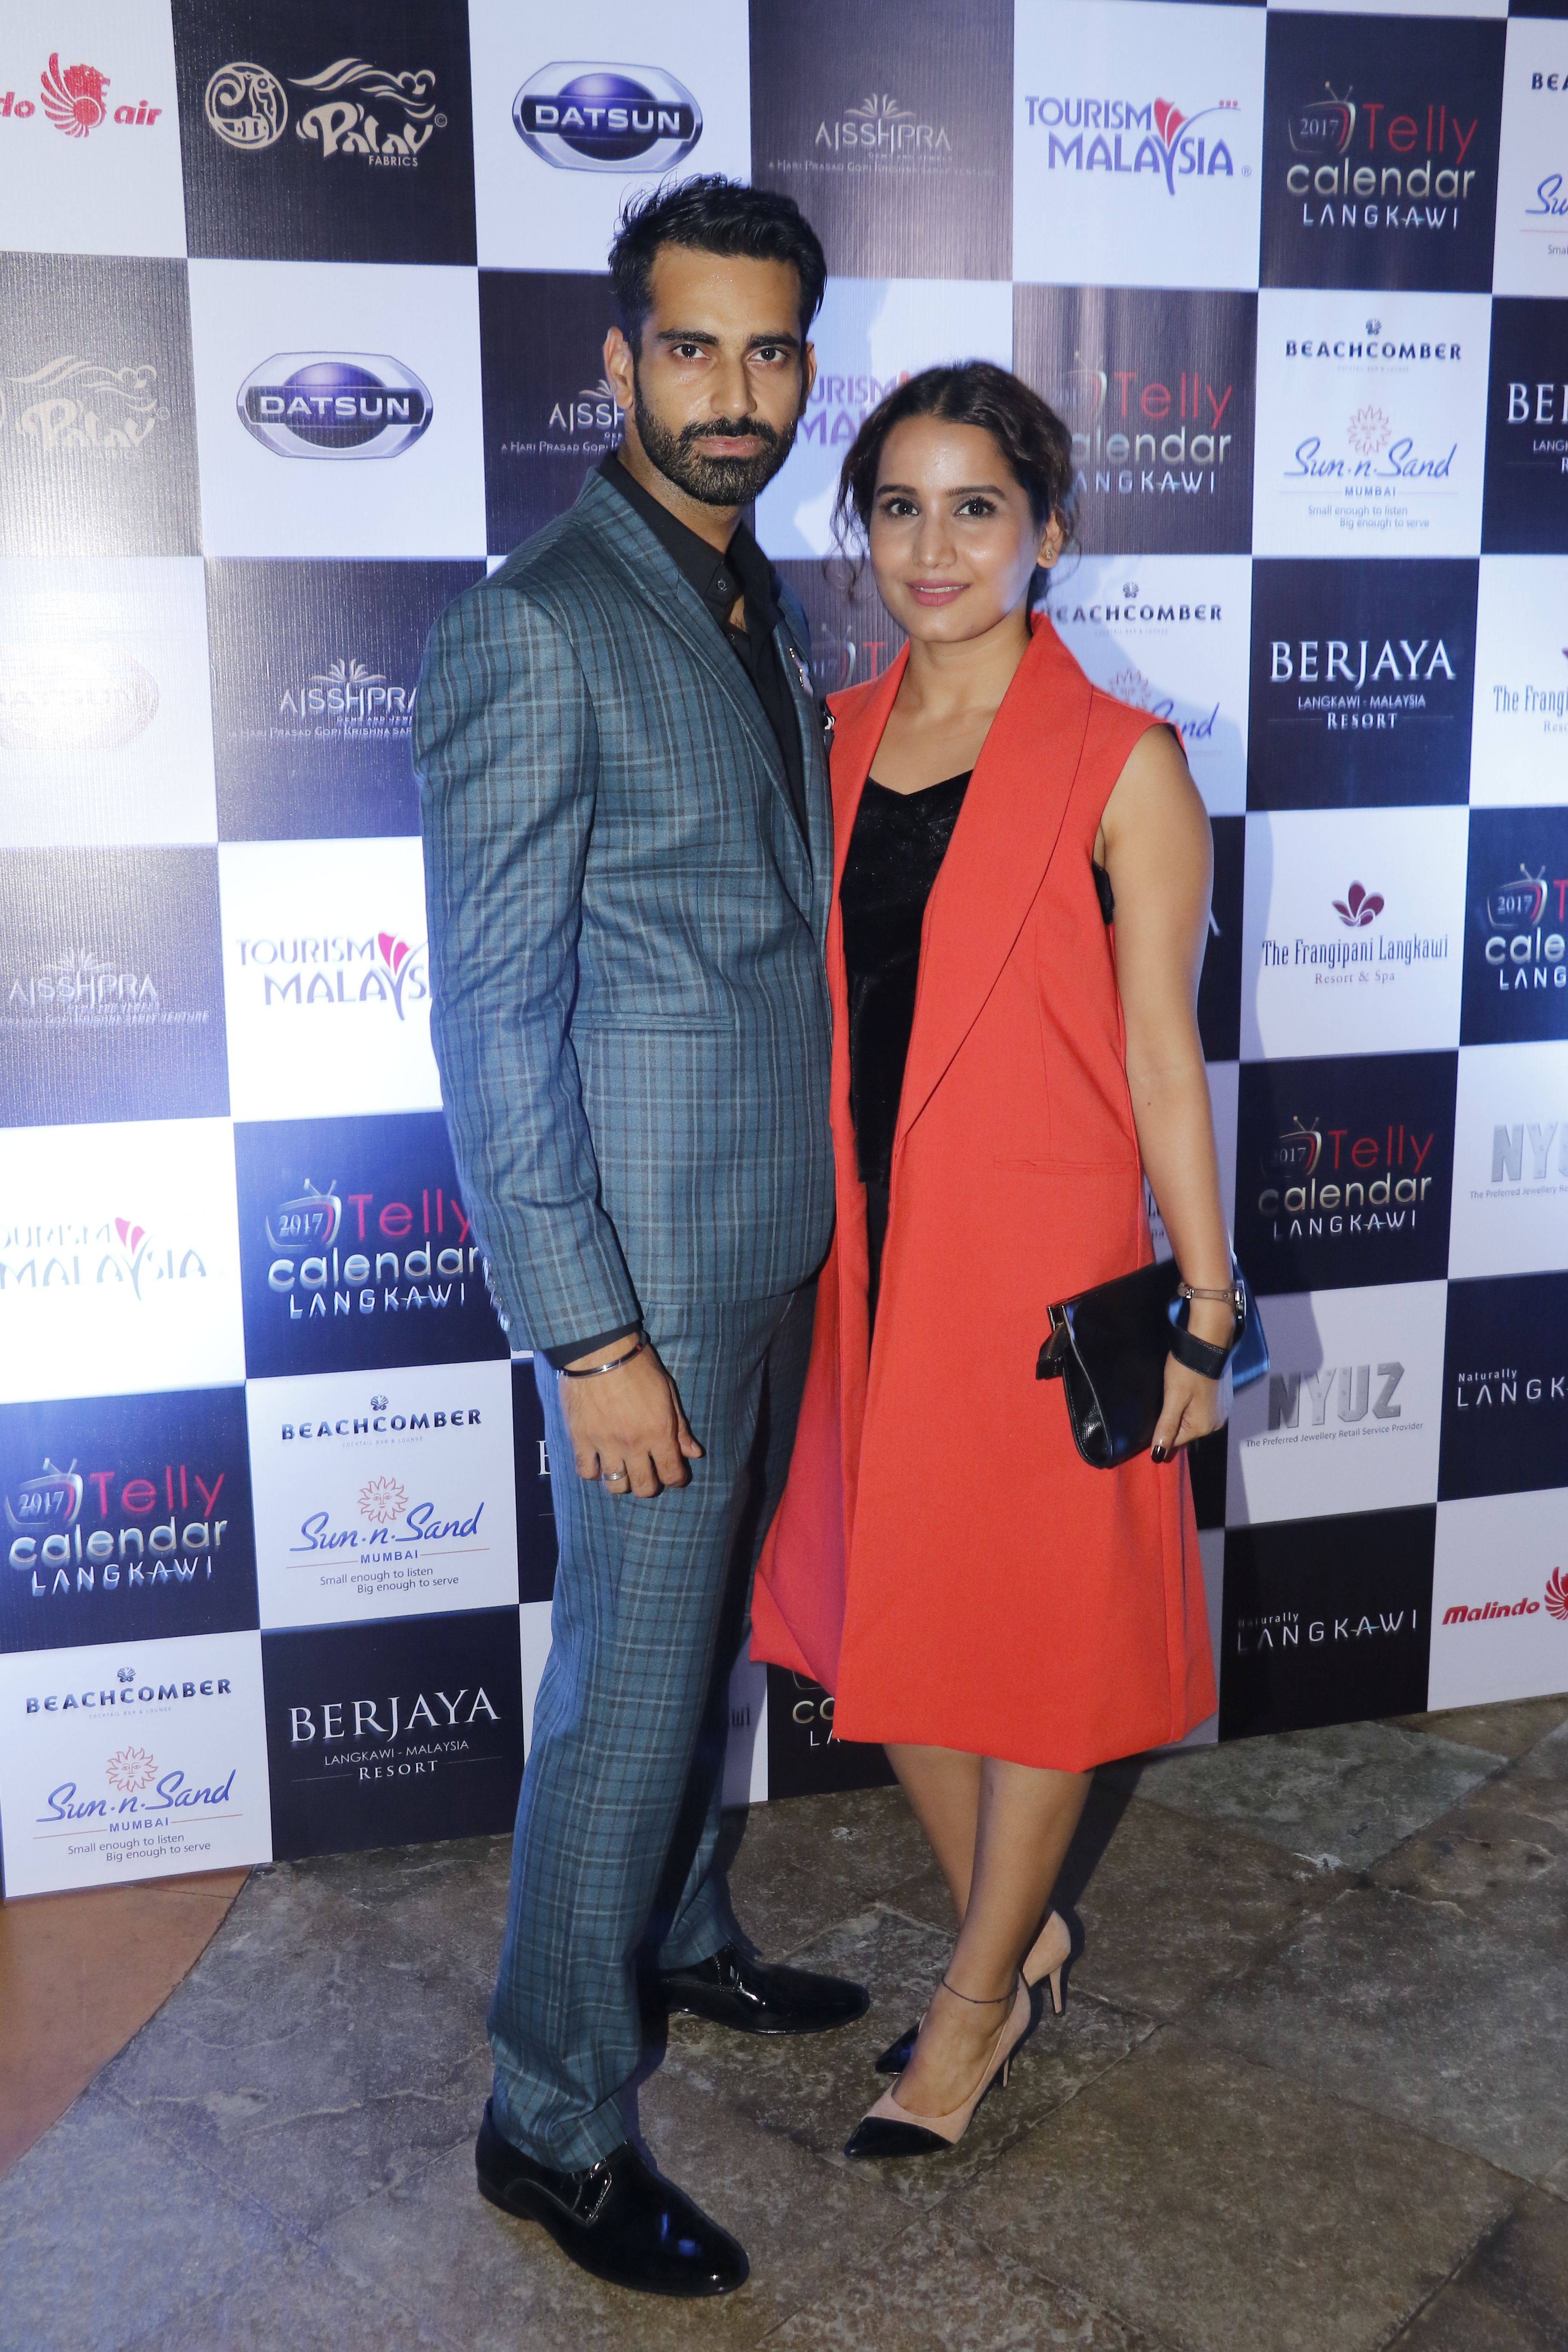 sunny-arora-and-ananya-arora-the-launch-of-telly-calendar-2017-langkawi